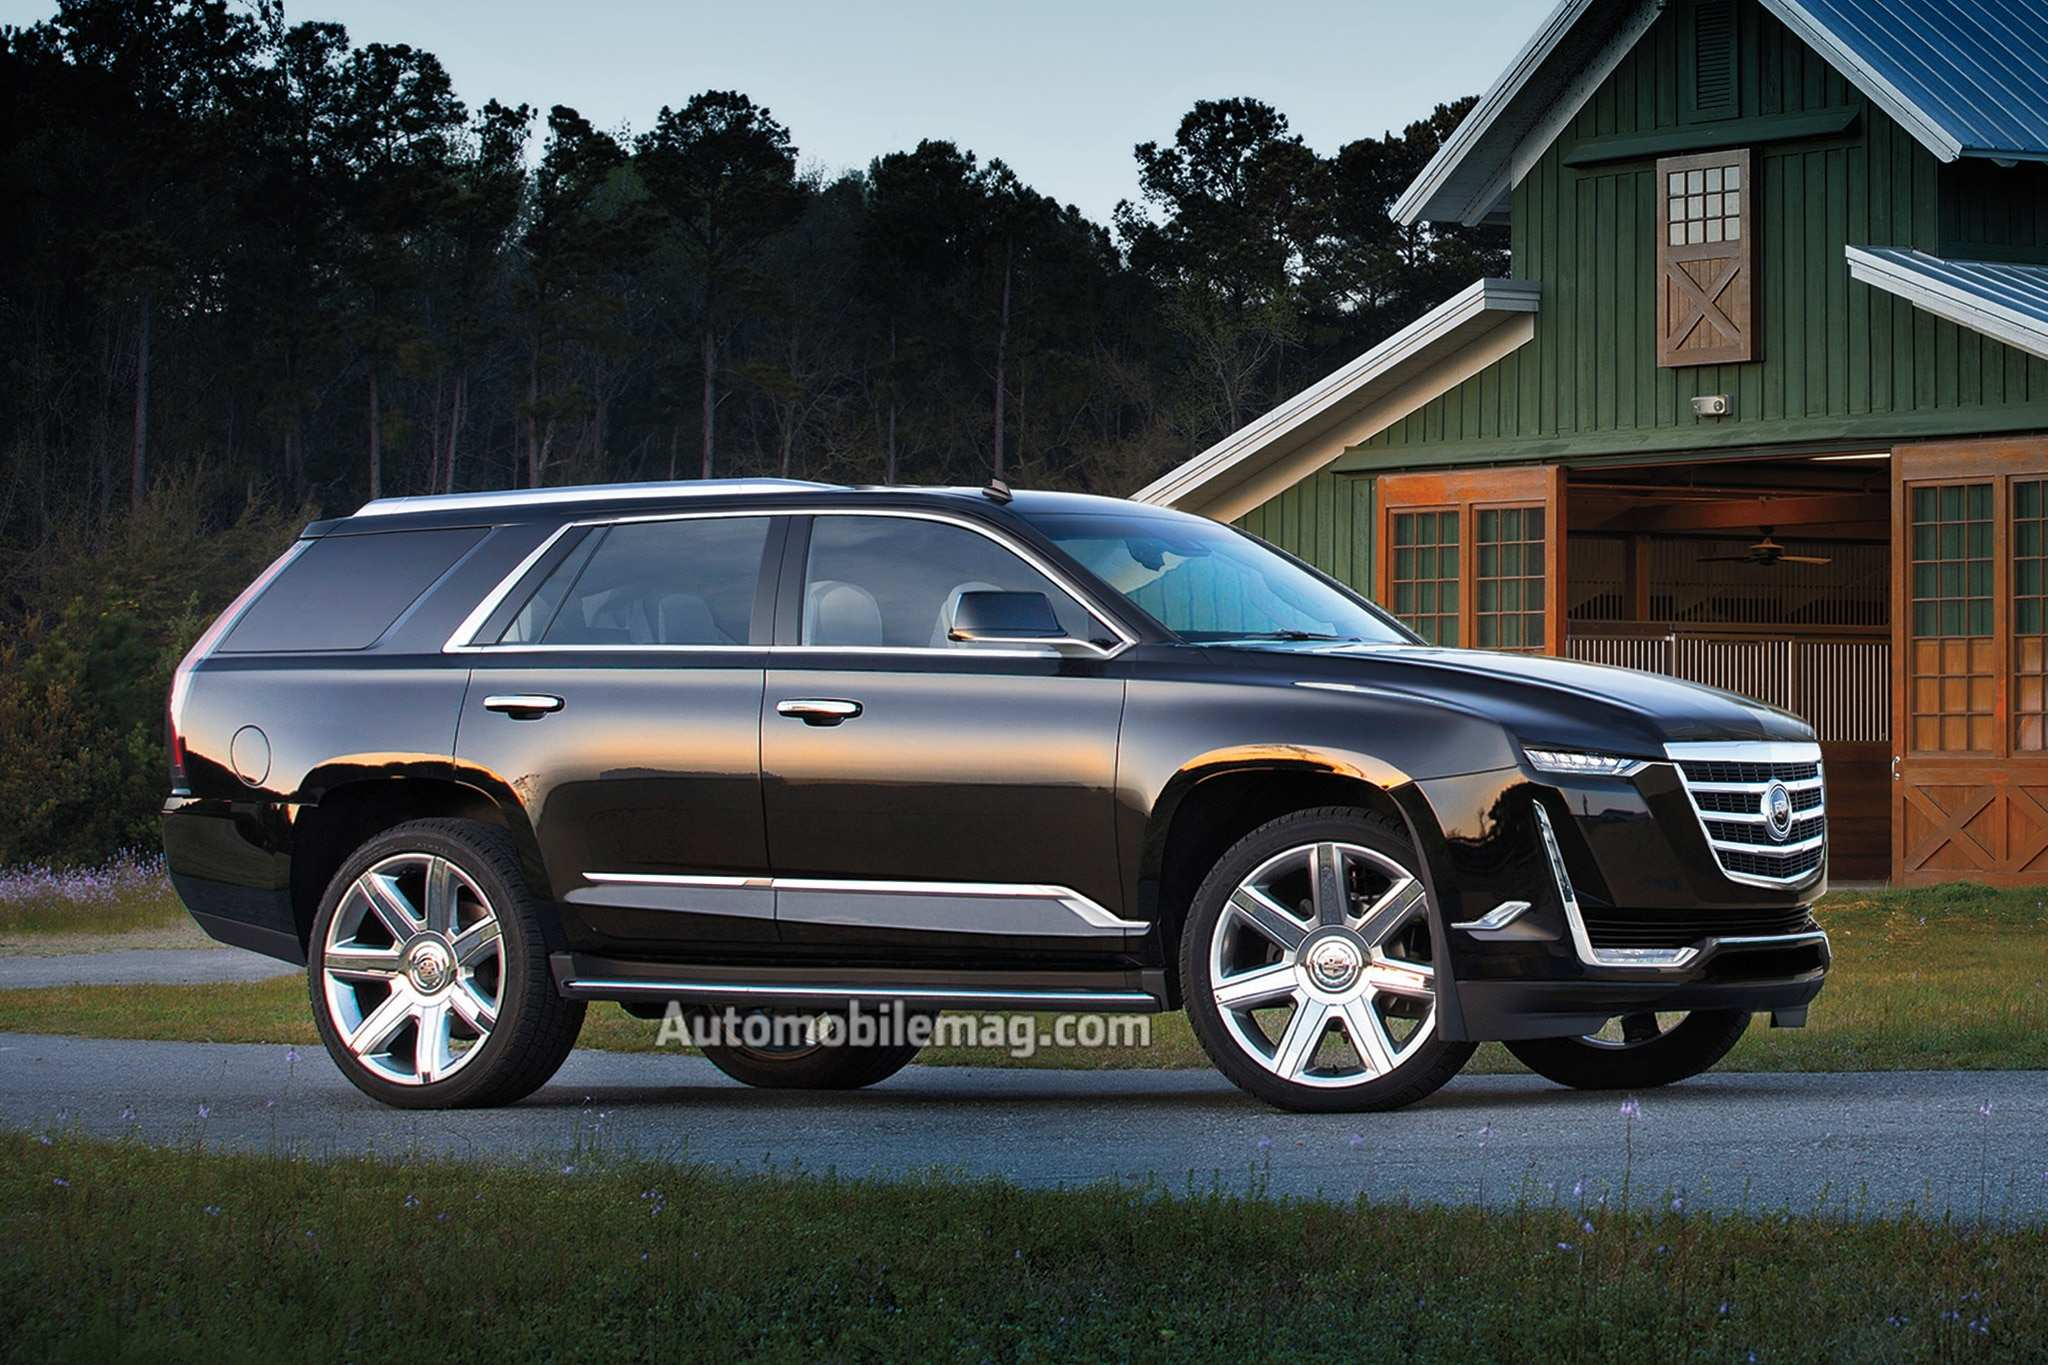 43 A Release Date For 2020 Cadillac Escalade Prices